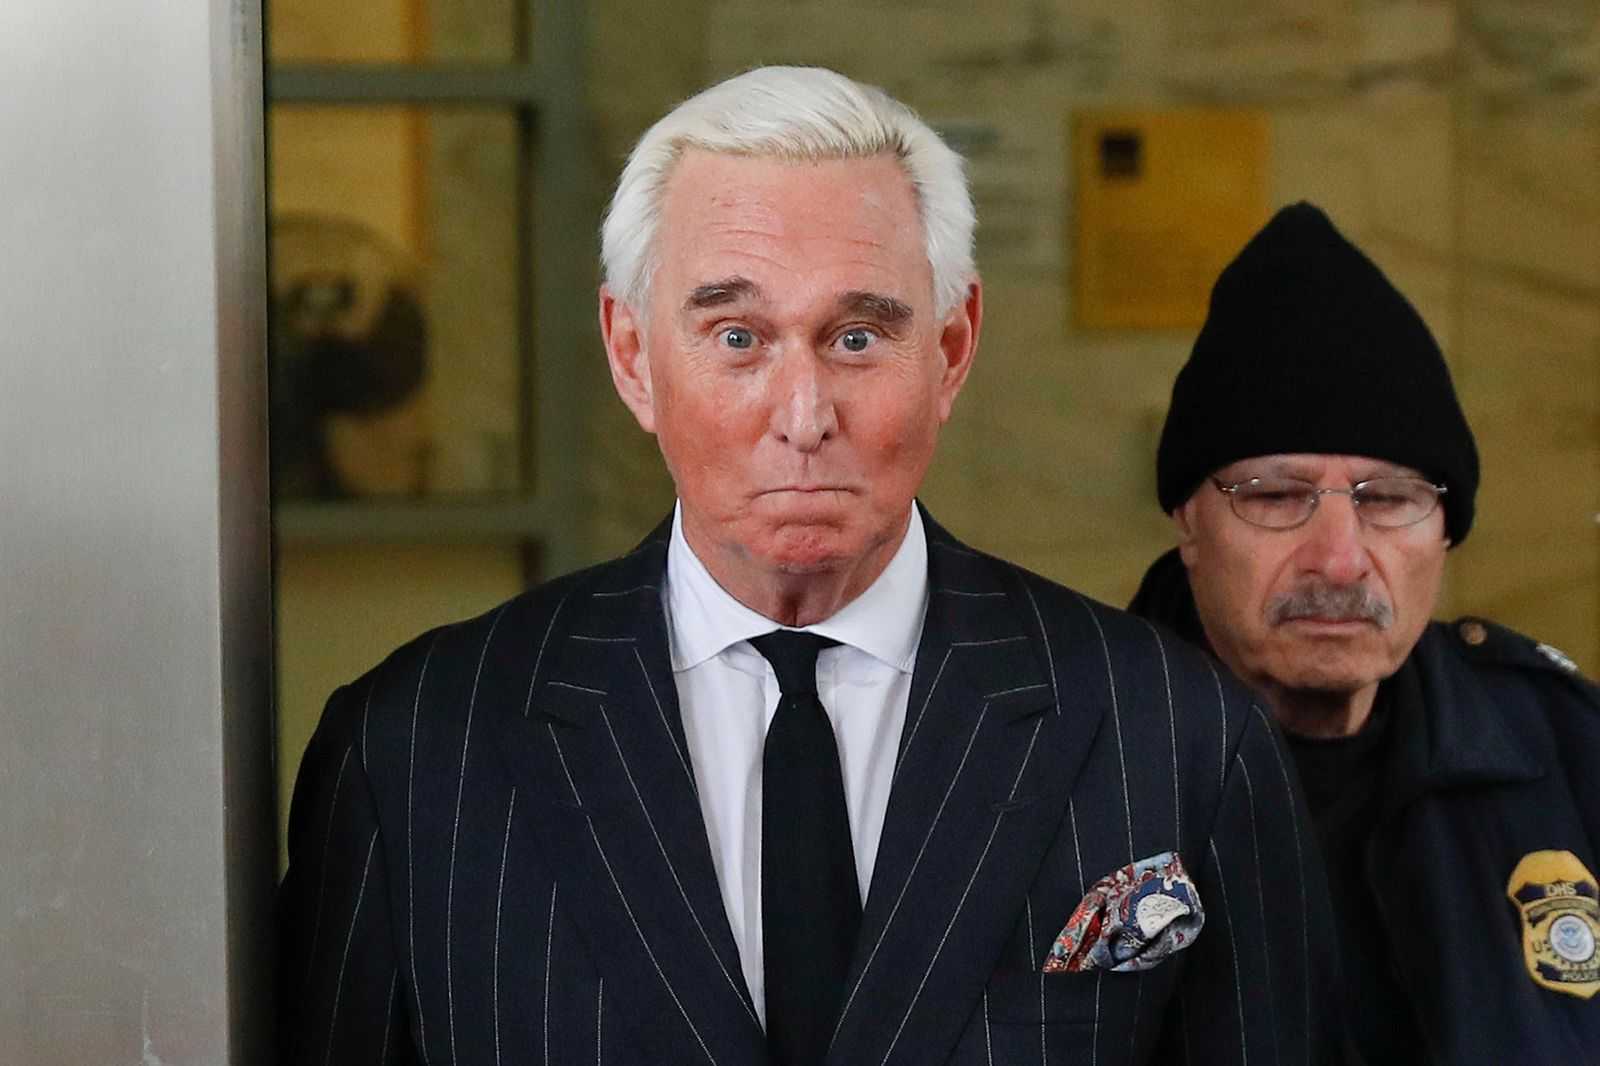 FILE - In this Feb. 1, 2019 file photo, former campaign adviser for President Donald Trump, Roger Stone, leaves federal court in Washington.{ } (AP Photo/Pablo Martinez Monsivais)